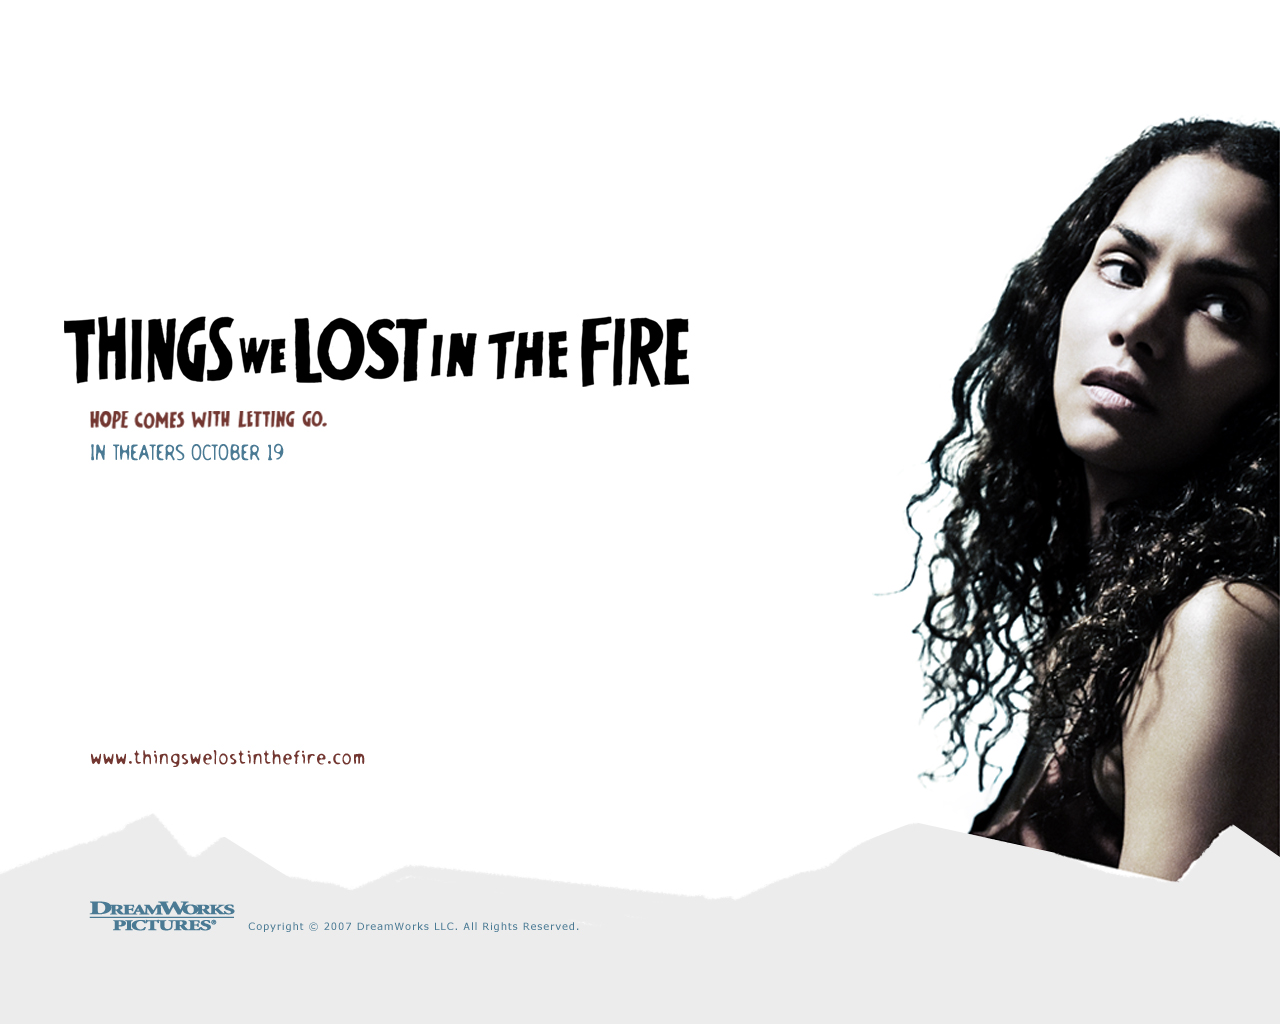 Things We Lost in the Fire (song) - Wikipedia